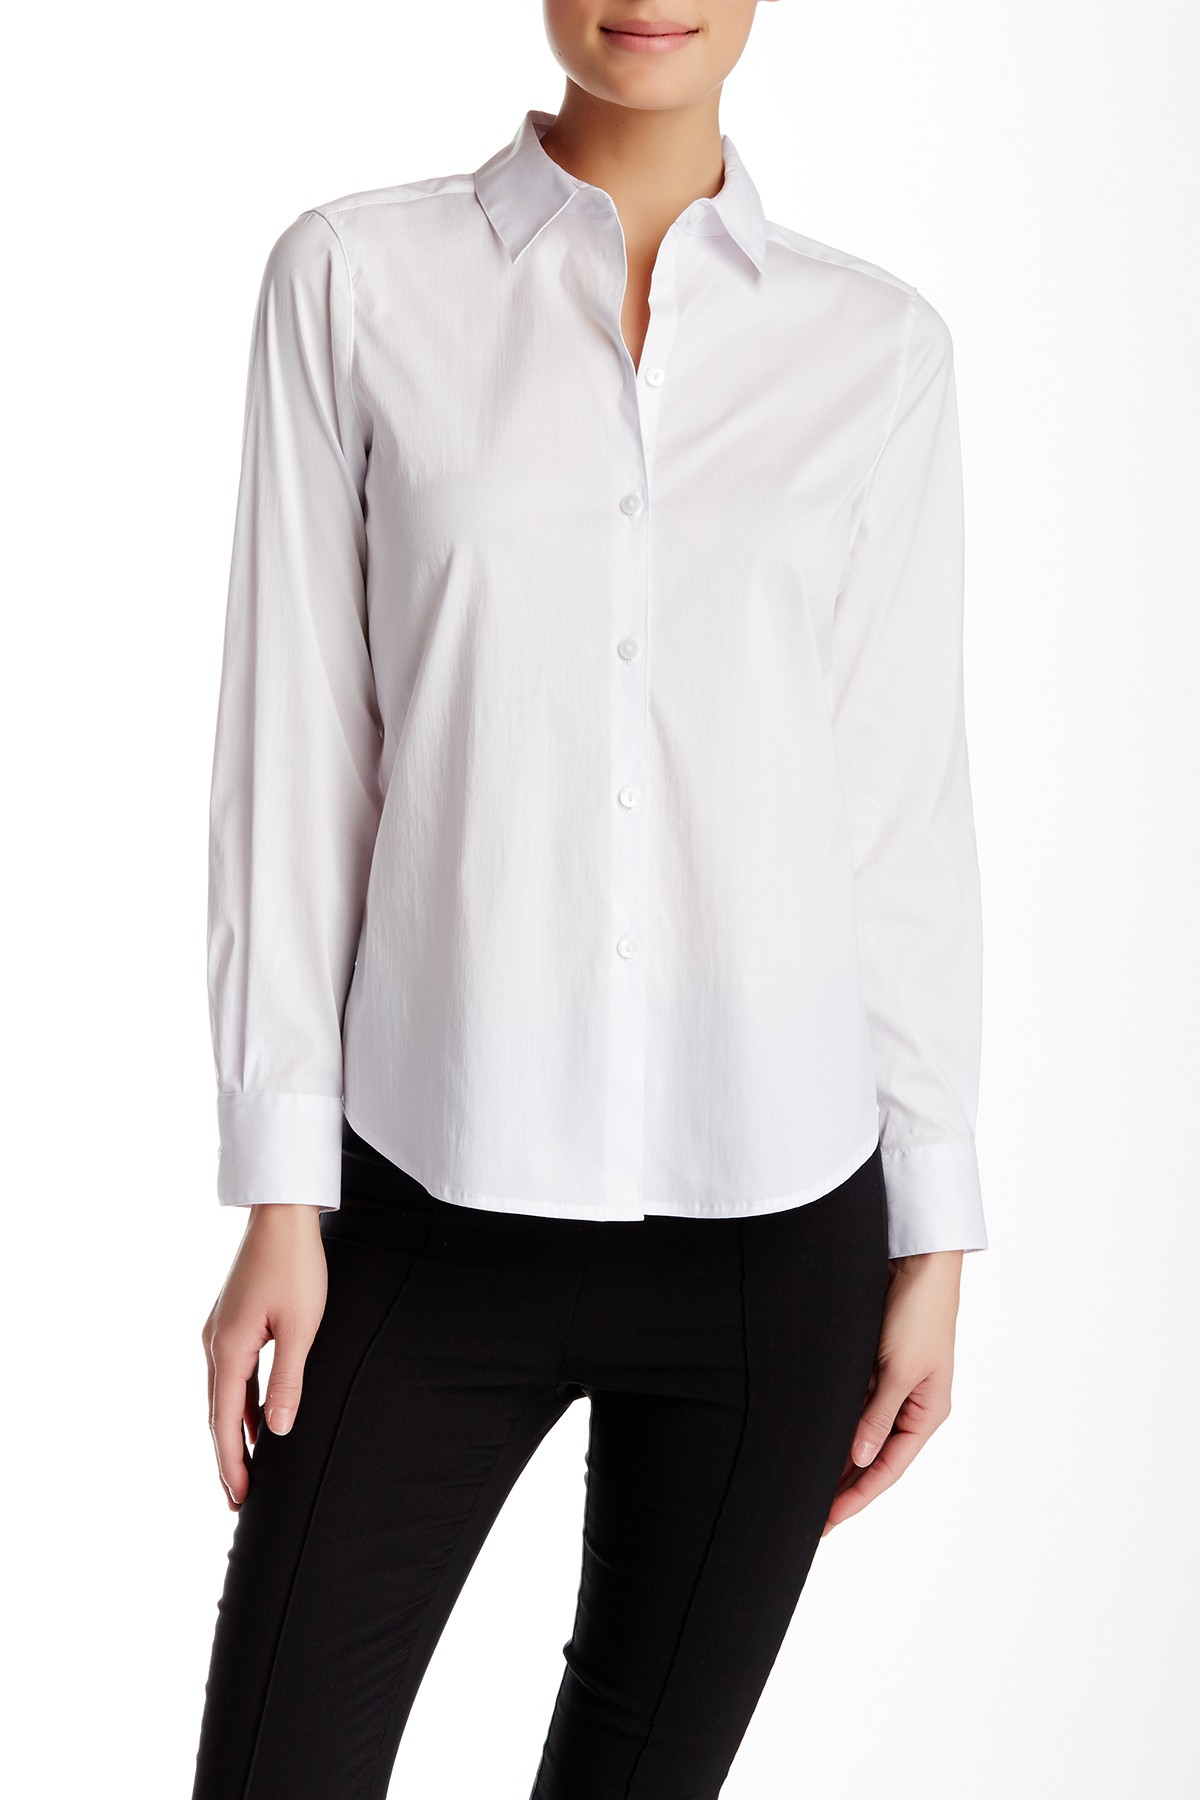 Foxcroft Solid Long Sleeve Shaped Fit Shirt In White Lyst